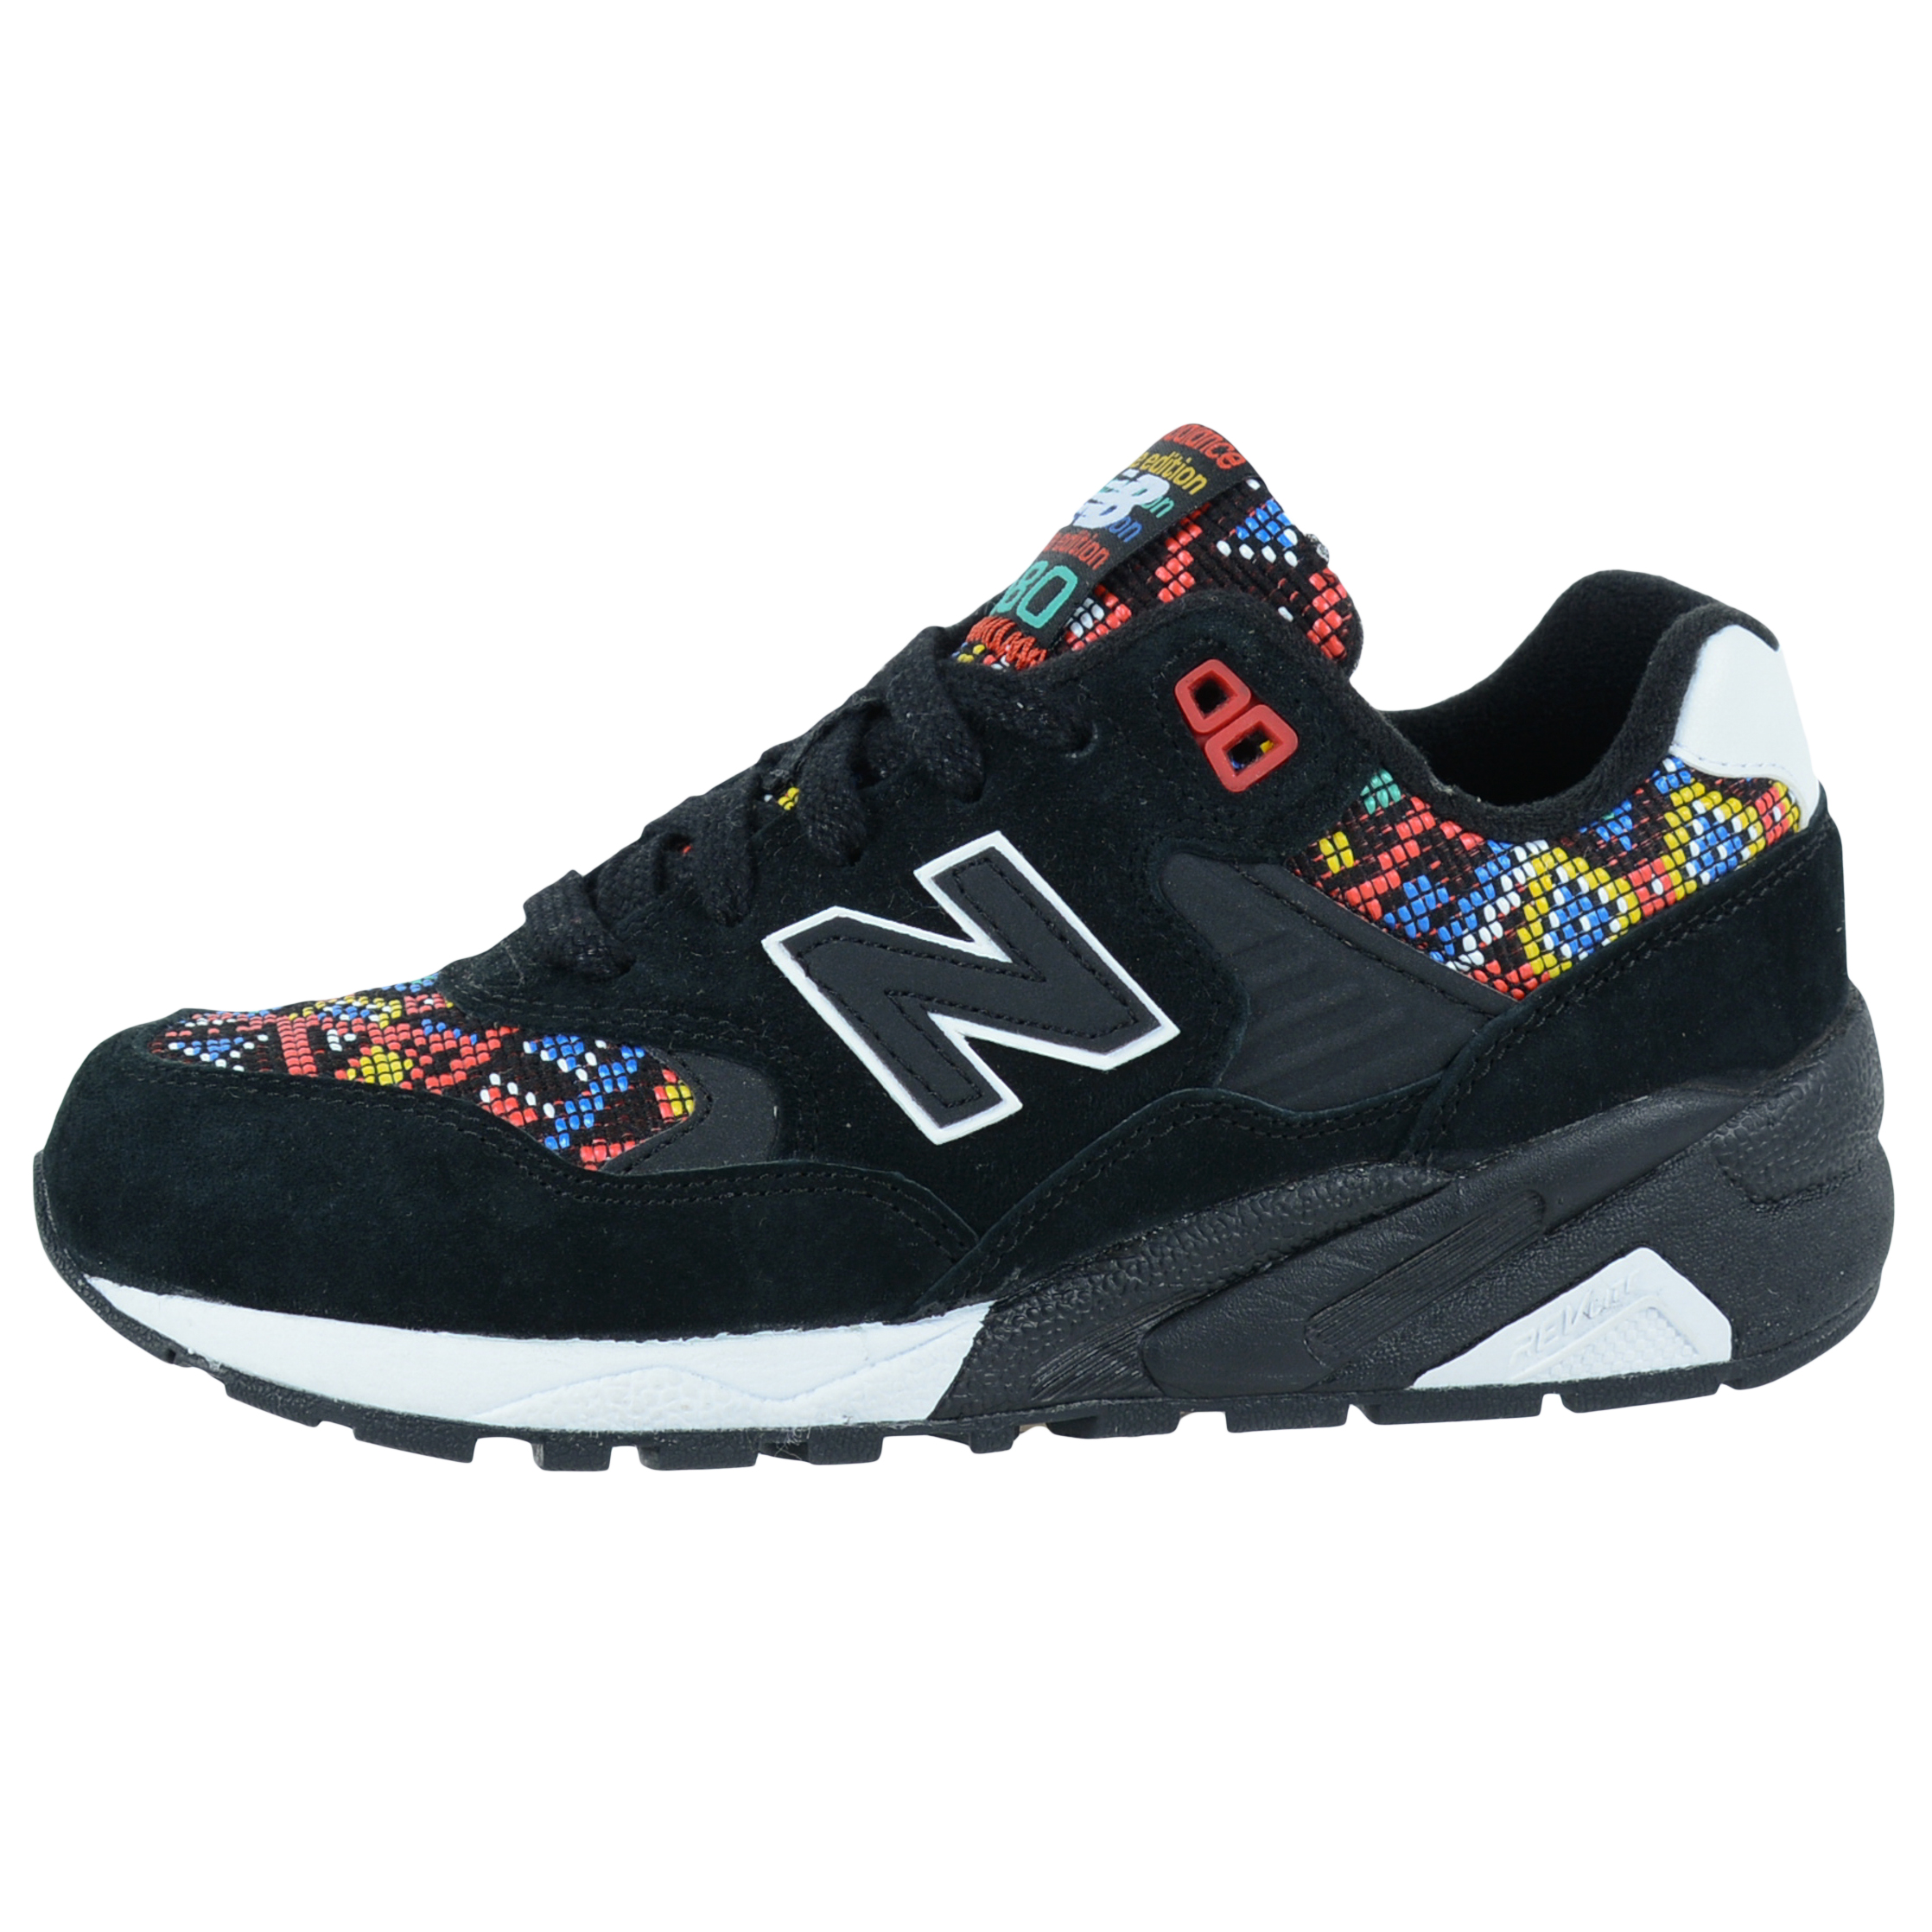 new balance 580 hombre colombia